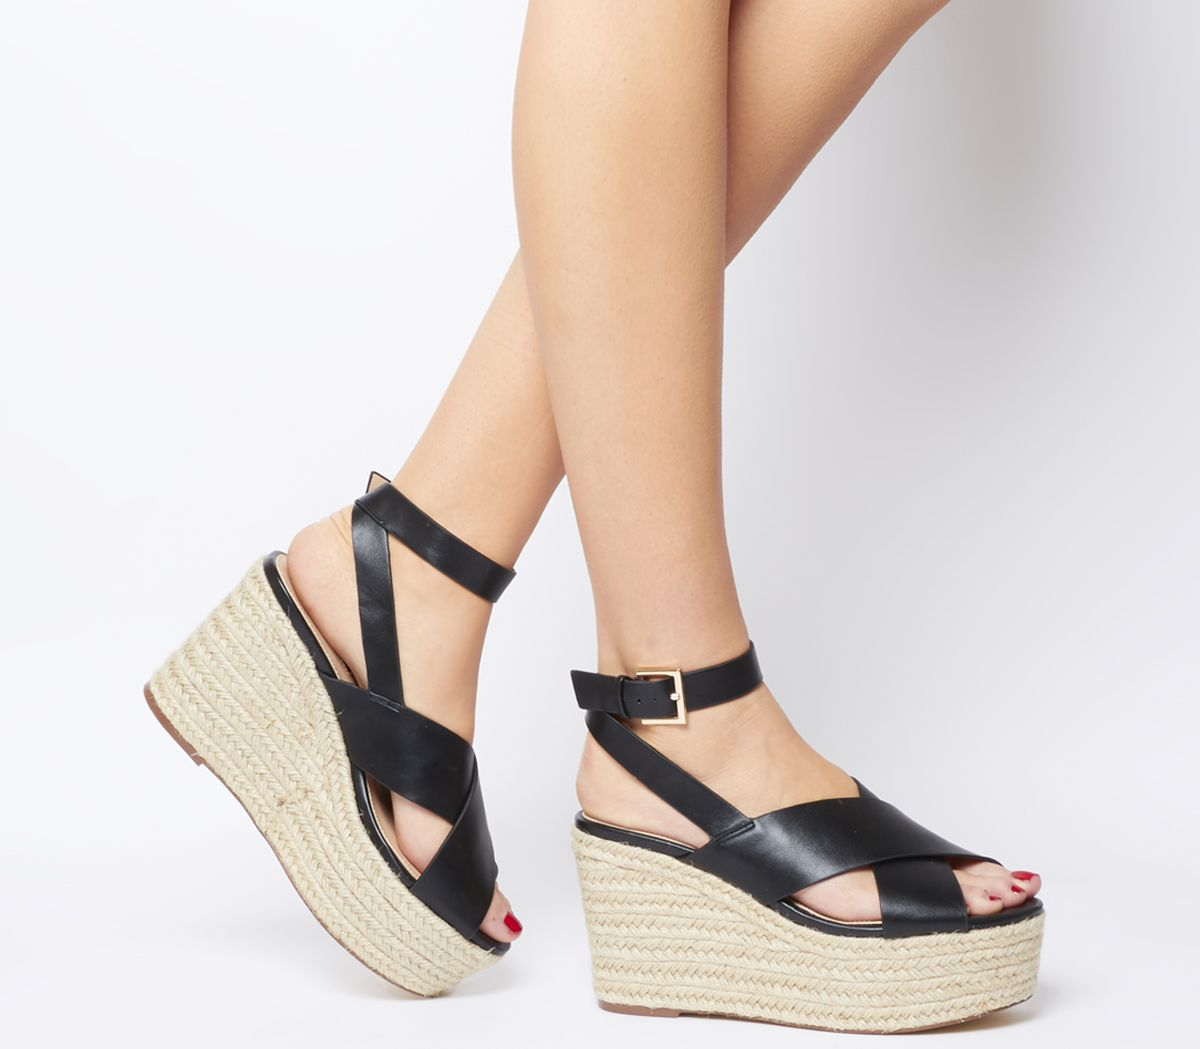 b3a97e283006 Office Medal Ankle Strap Espadrille Wedges Black - Mid Heels